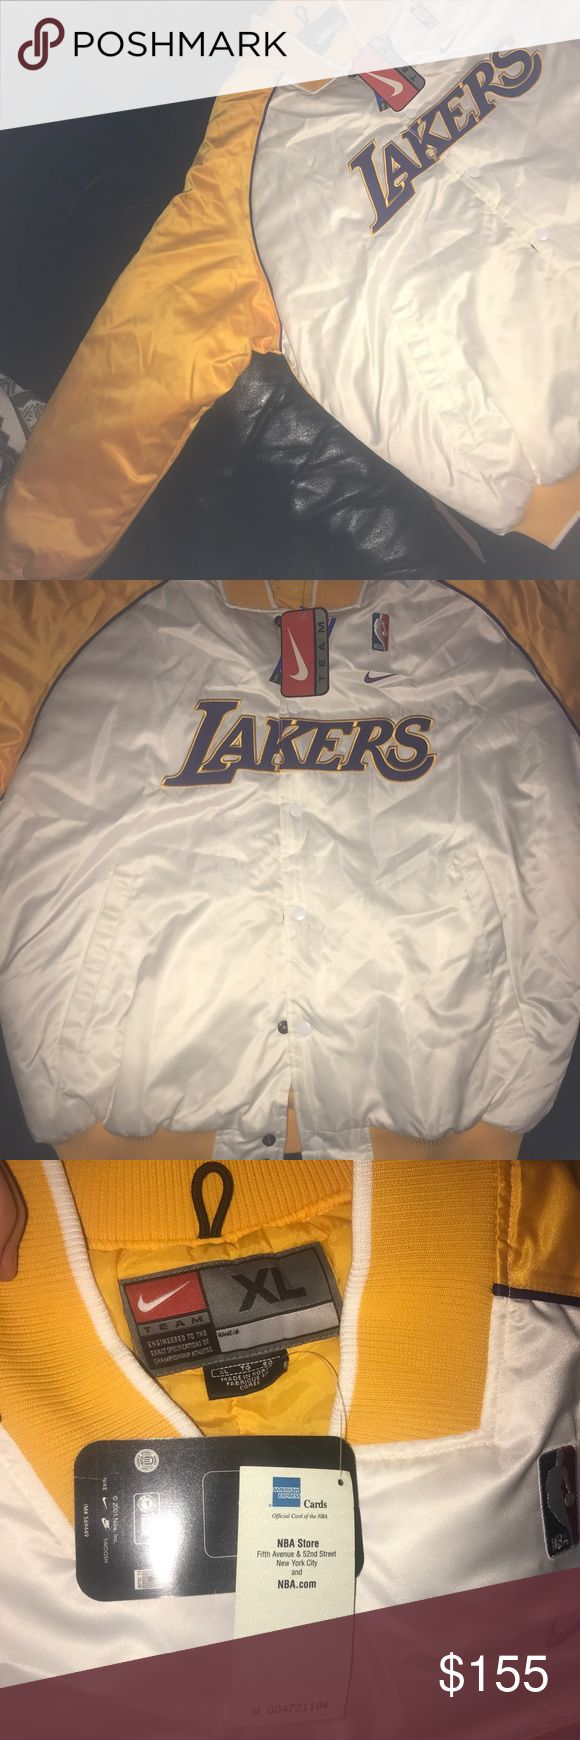 NBA NIKE LAKERS BOMBER JACKET PRICE DROP vintage New with tag LA Los Angeles Lakers men's basketball Nike varsity bomber jacket insulated with detail stitching on the front and back yellow white and purple size men's XL no defects PRICE NEGOTIABLE!!   Similar to: Supreme, Adidas, hypebeast, rare, yeezy, streetwear, bape, palace, Jordan, retro, Nike Jackets & Coats